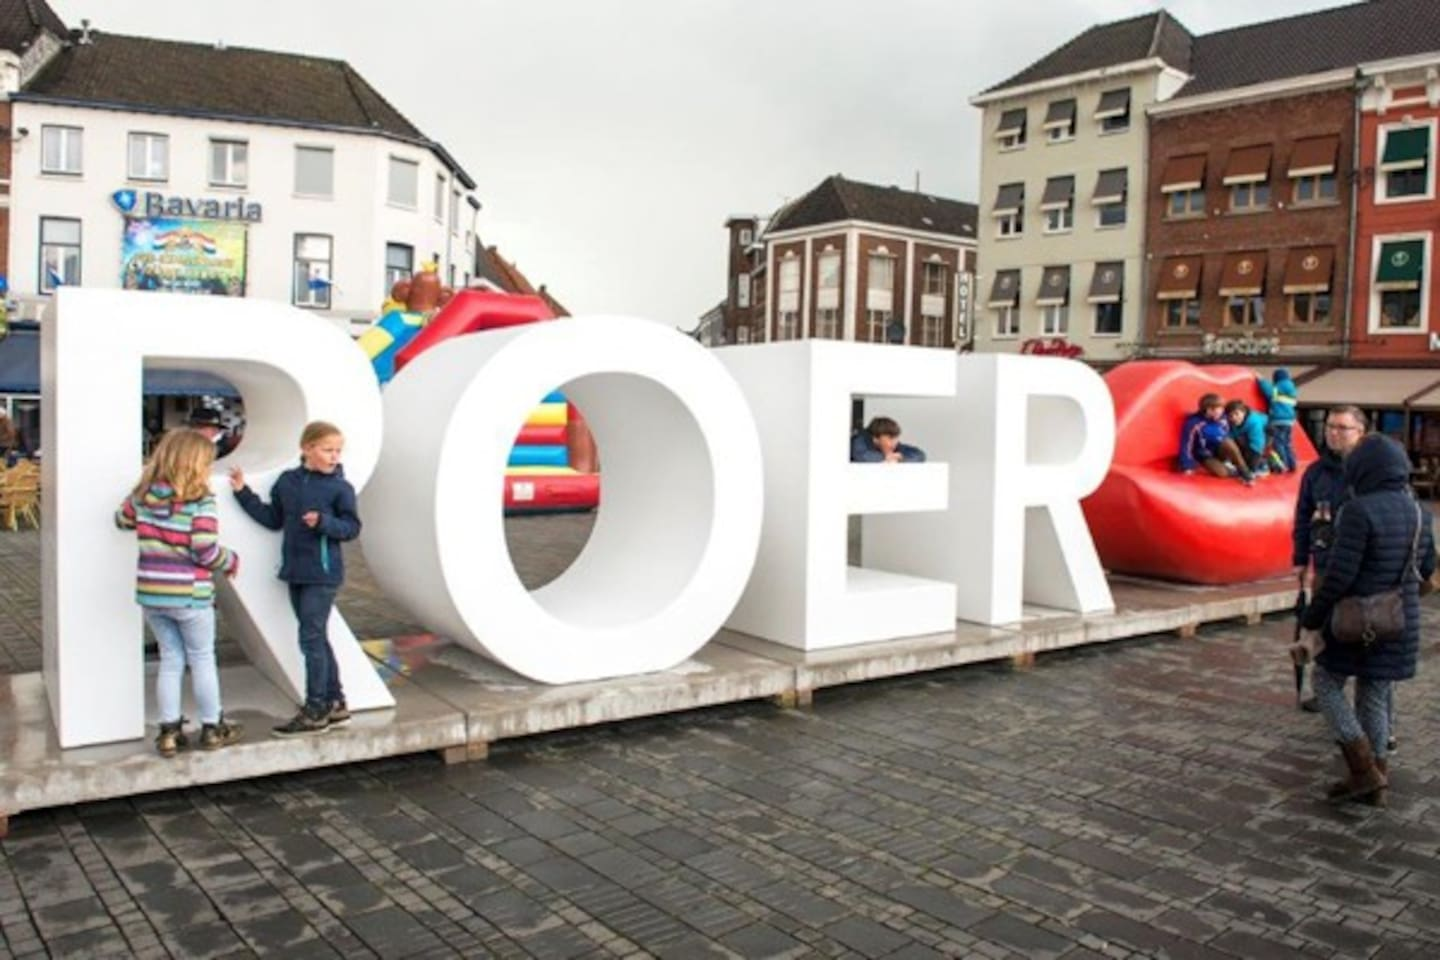 This is located in the centre of Roermond. In front of the Roermond Train station.